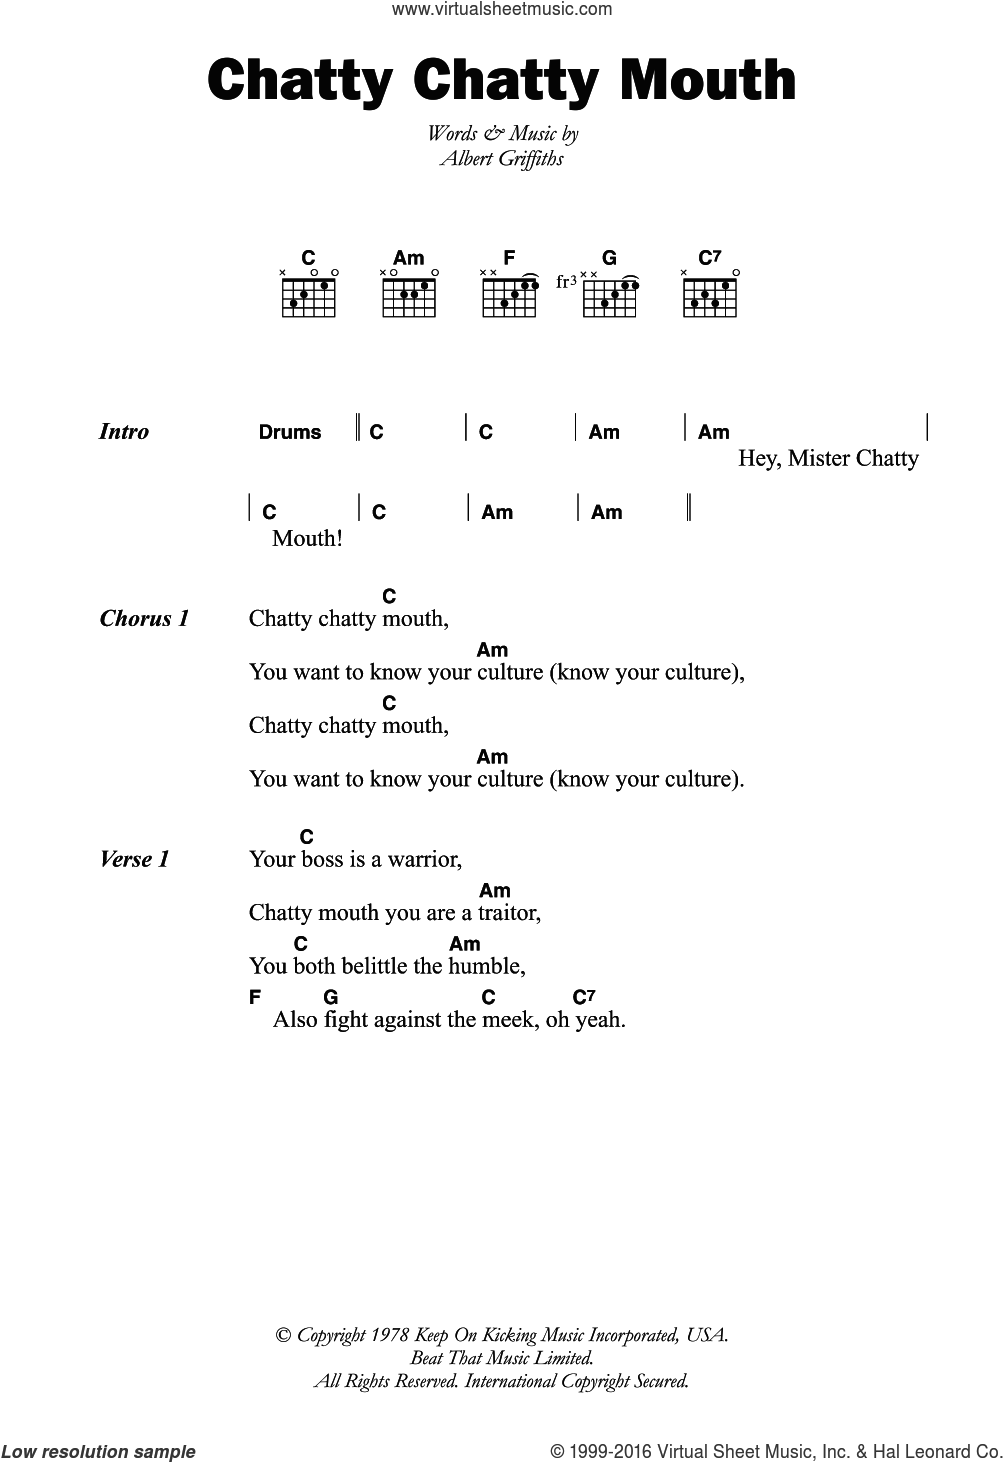 Chatty Chatty Mouth sheet music for guitar (chords) by Albert Griffiths. Score Image Preview.